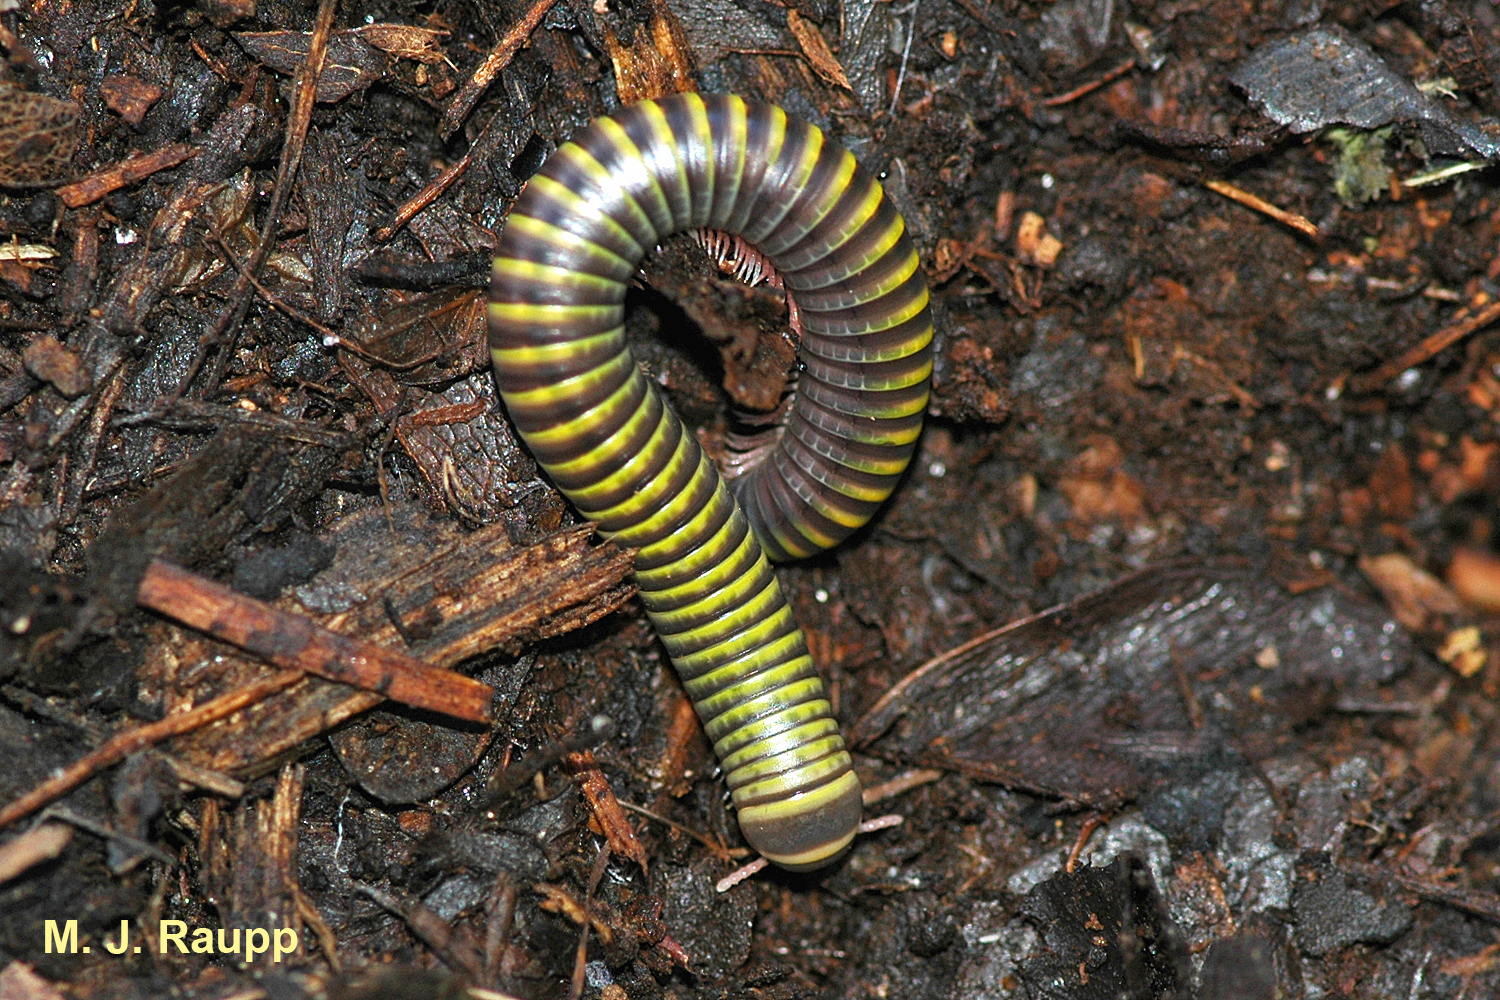 This millipede is as useful as it is pretty, helping recycle decaying organic matter on the forest floor.